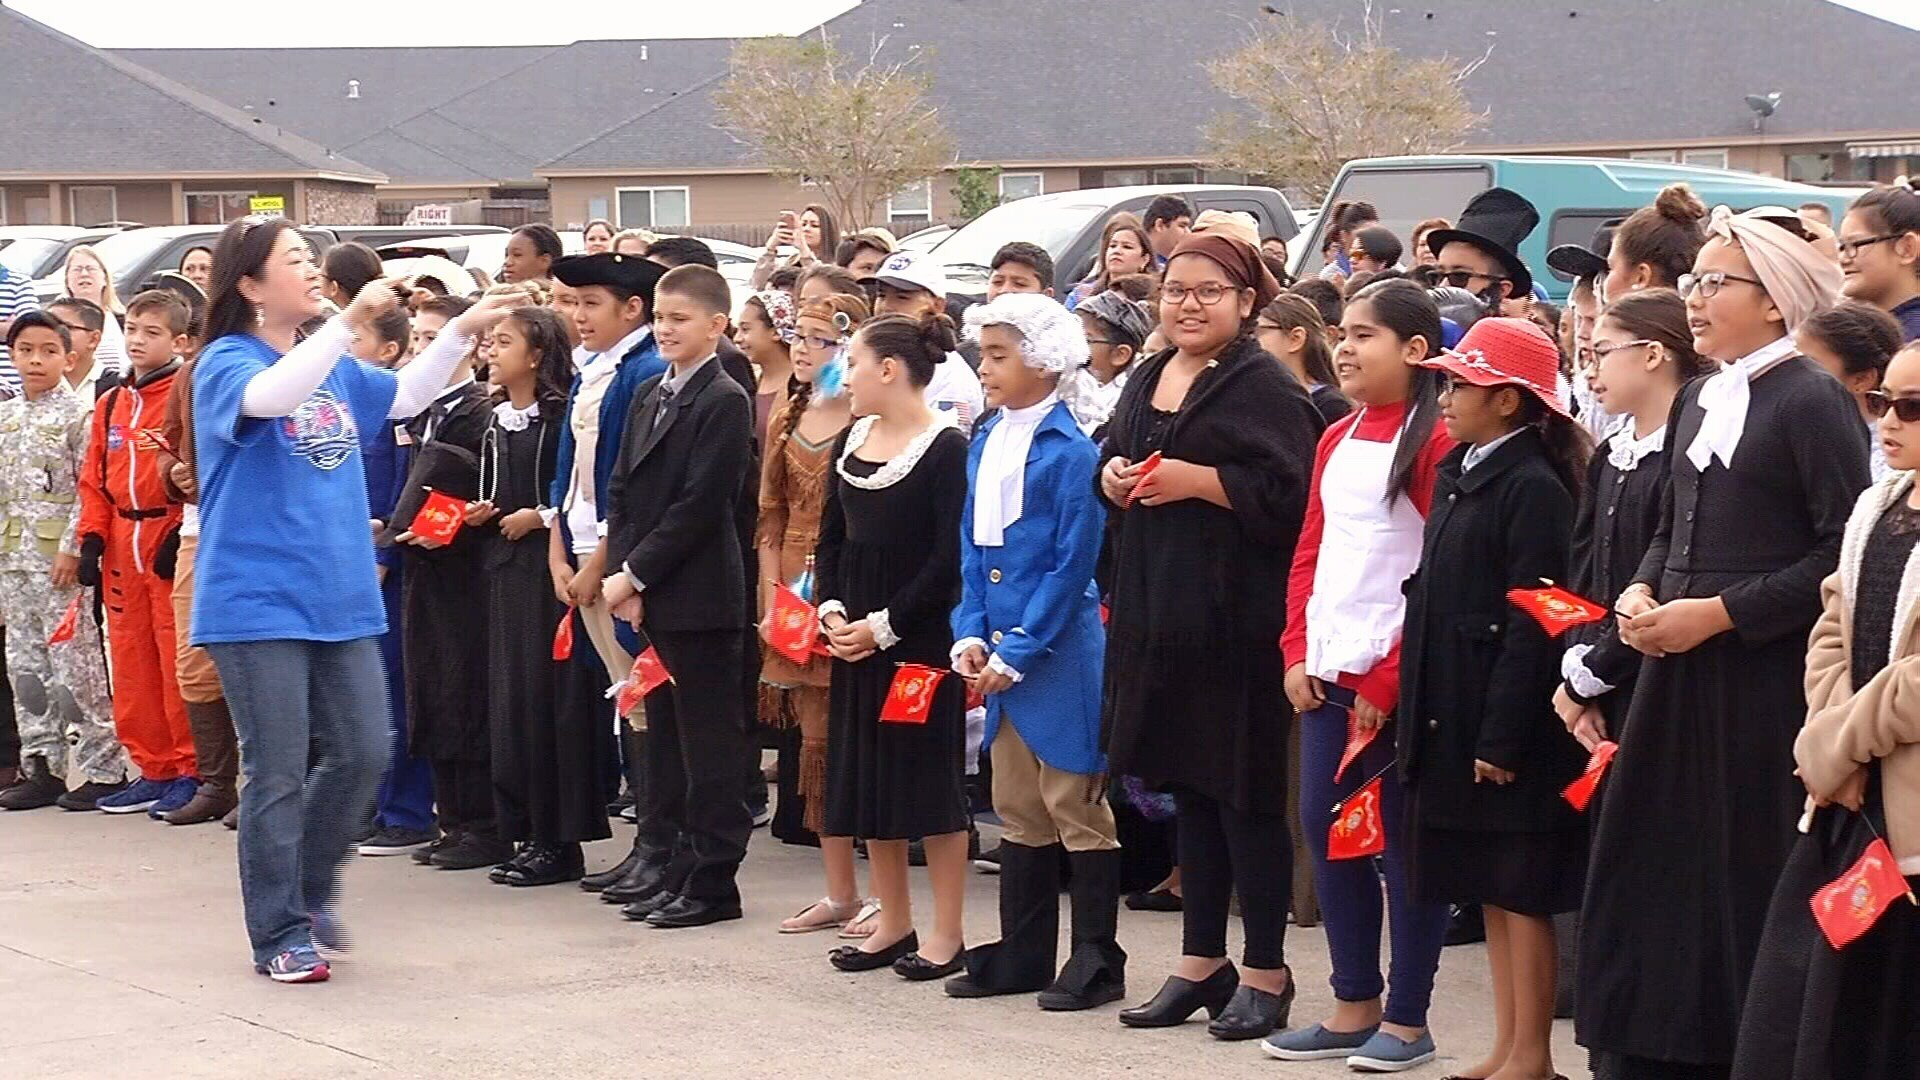 Dawson Elementary students sang patriotic songs at the end of Friday's event.